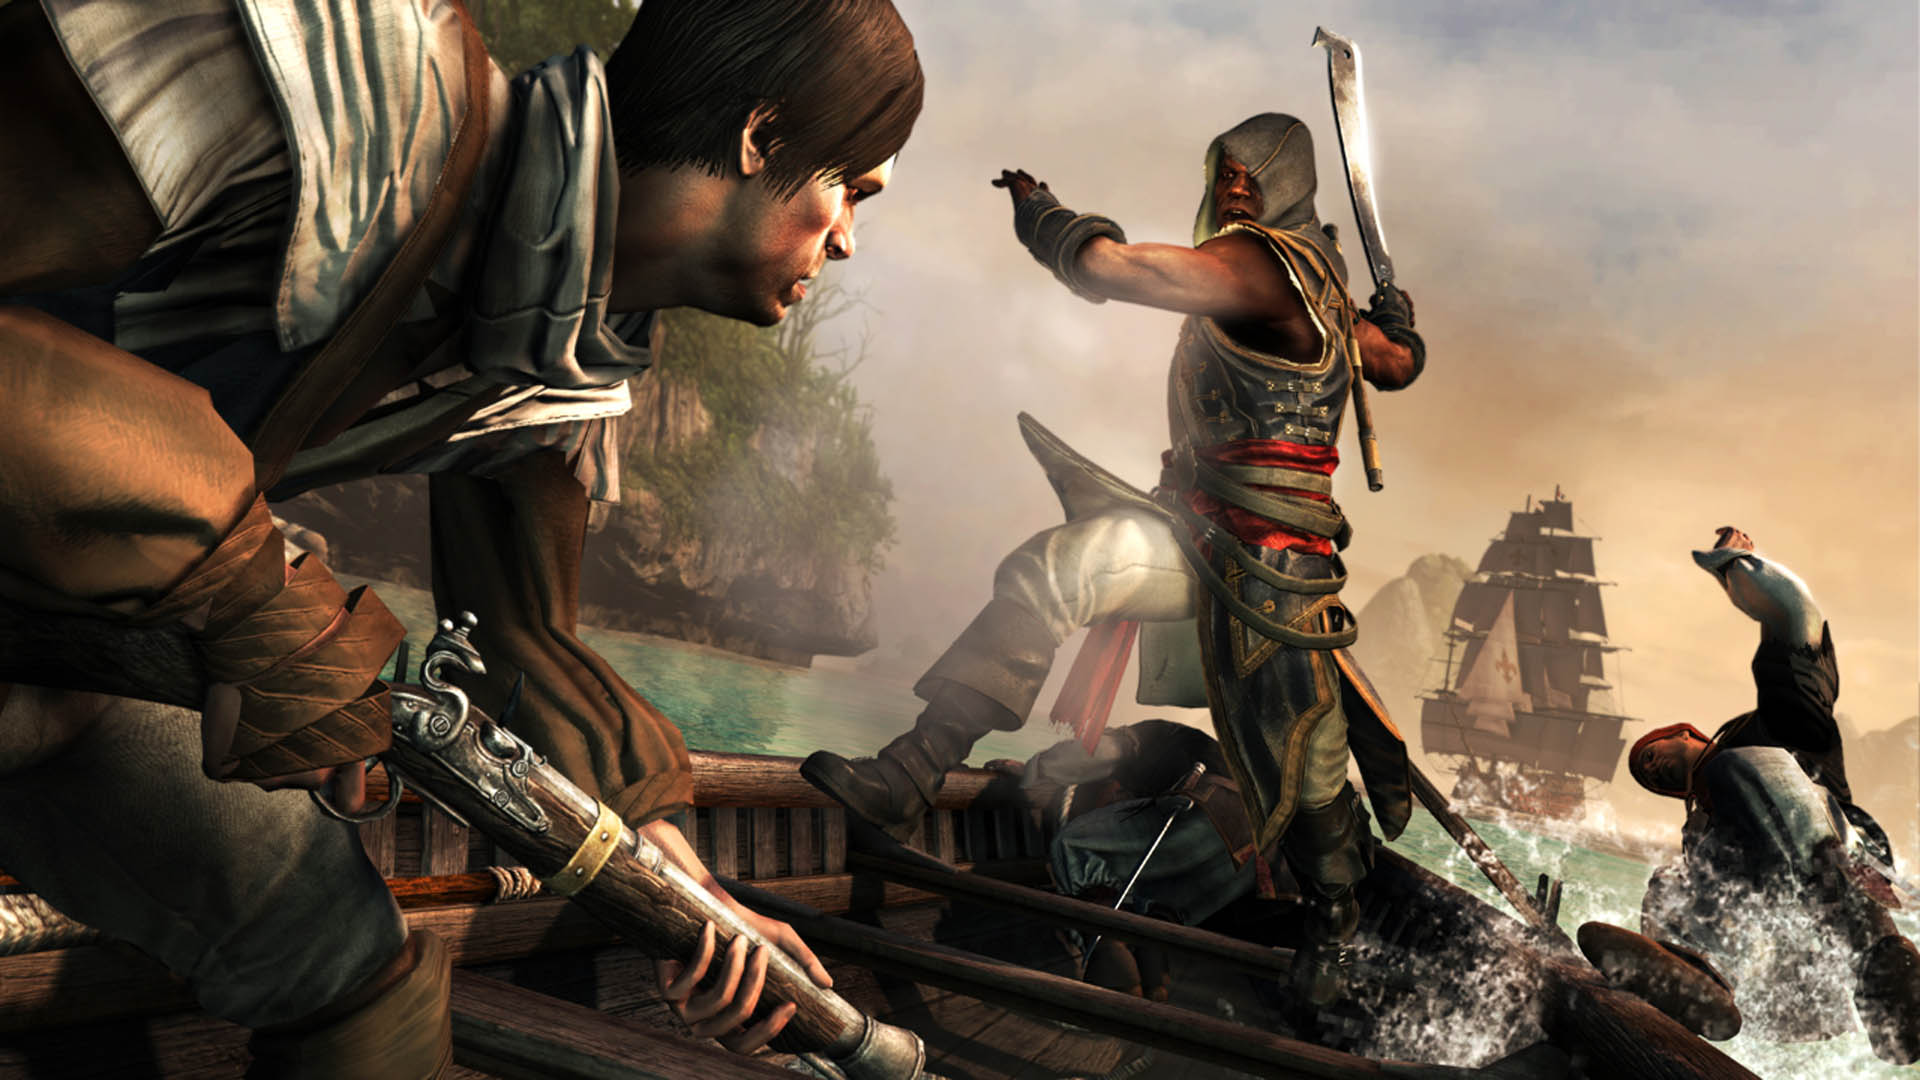 14. Assassin's Creed Freedom Cry